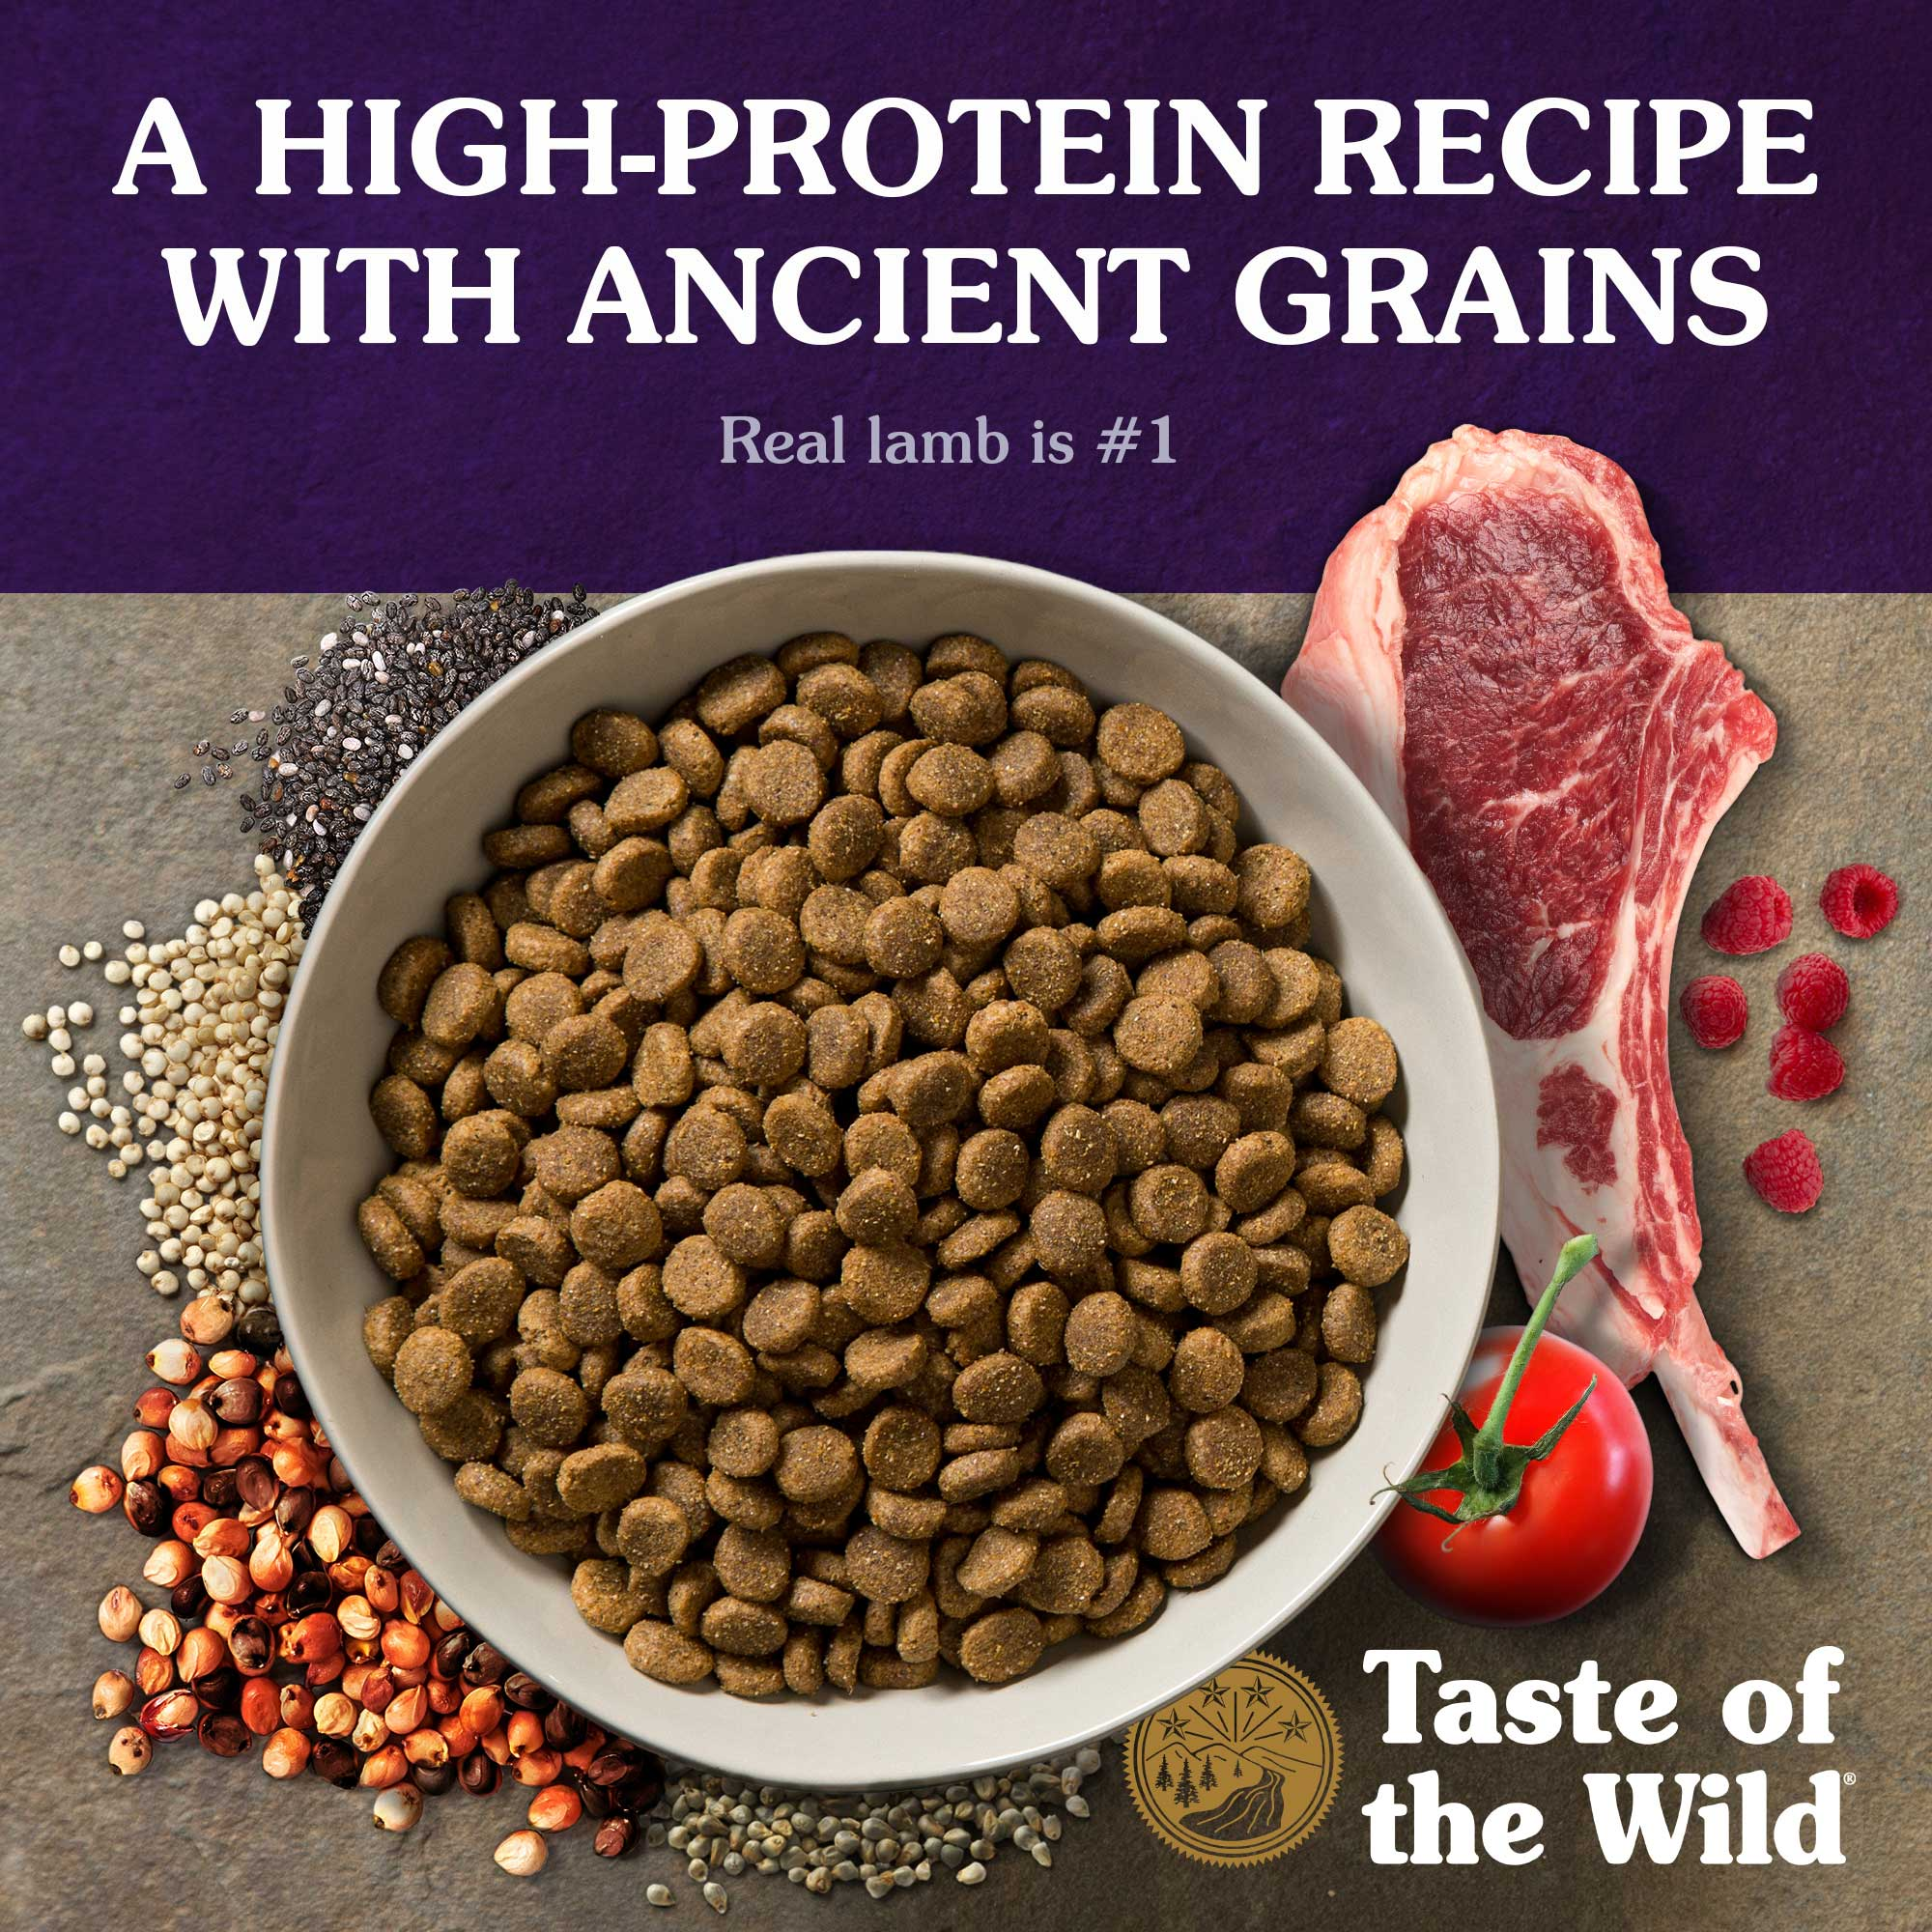 A high-protein recipe with ancient grains. Real lamb is #1.